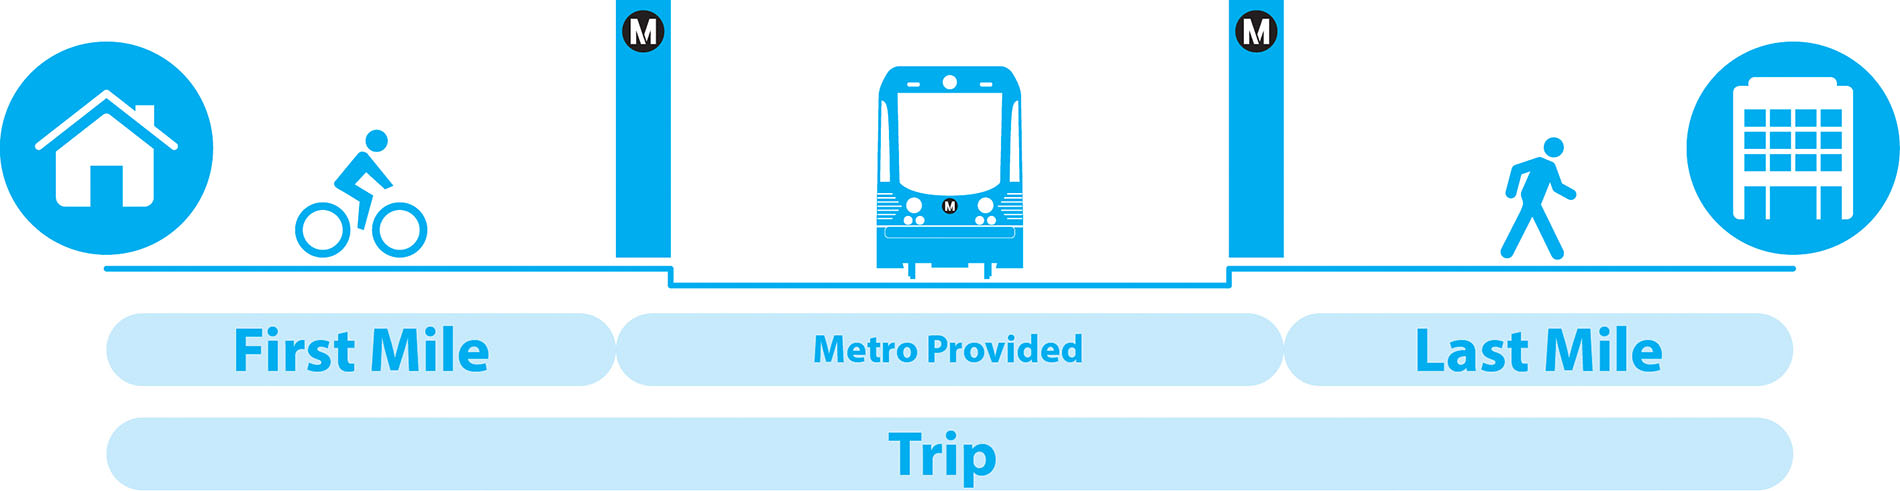 Our Project goal is to create a mobile platform that consolidates multi trips and provides users with metro ETA in real times.